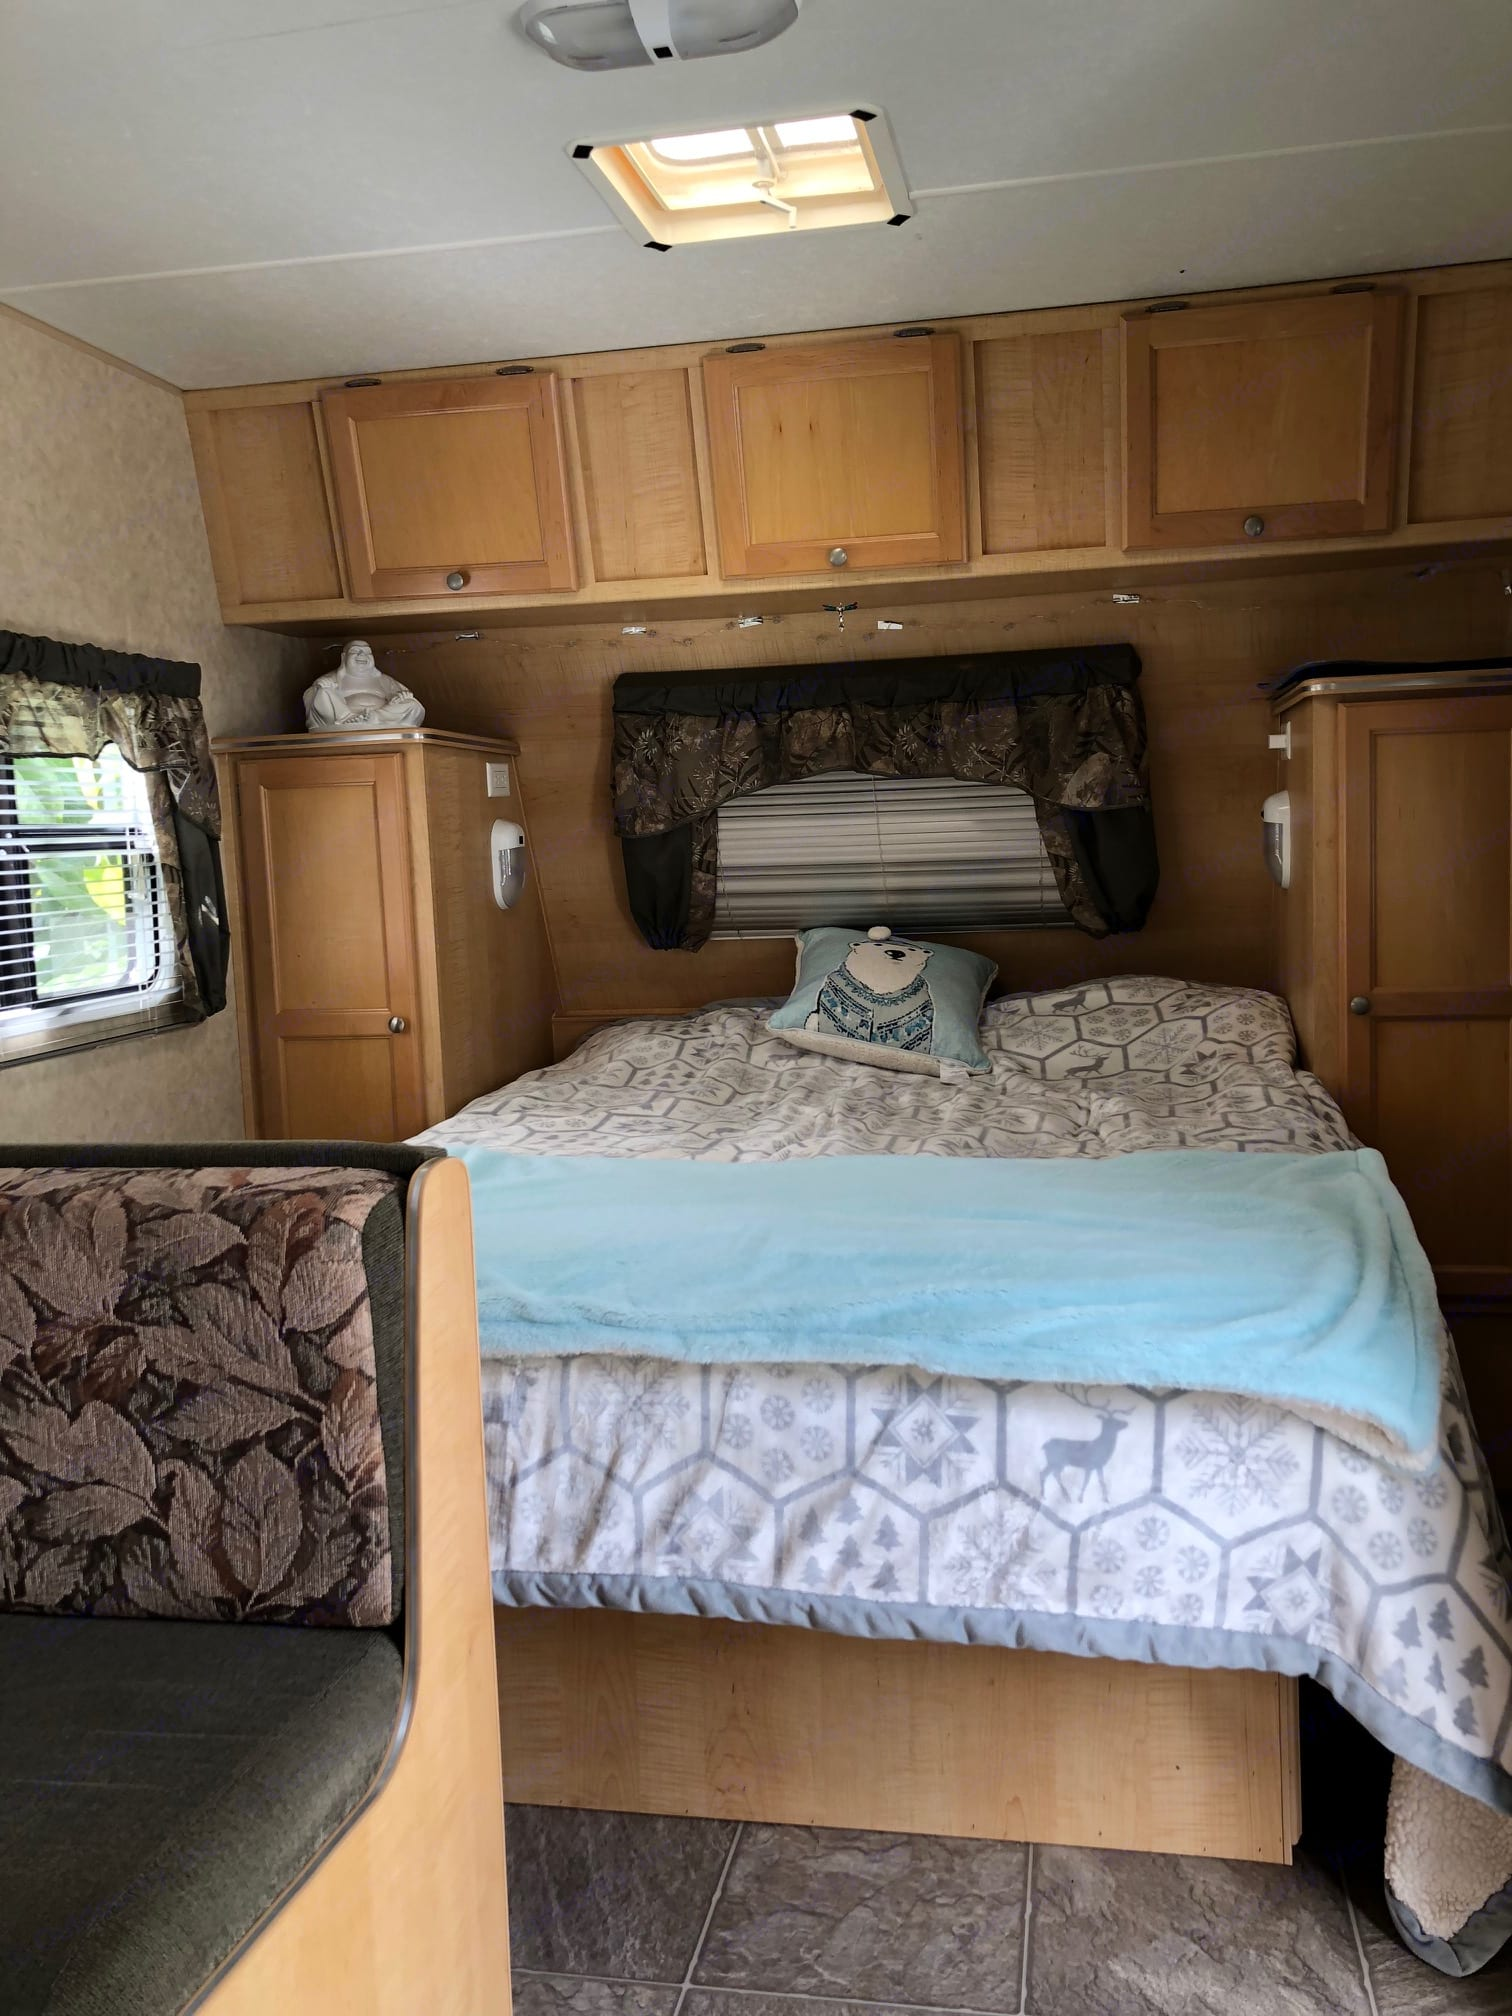 Sleep like a baby in this queen size bed with windows and skylight that open up to the great outdoors!. trail lite trailcruiser 2006